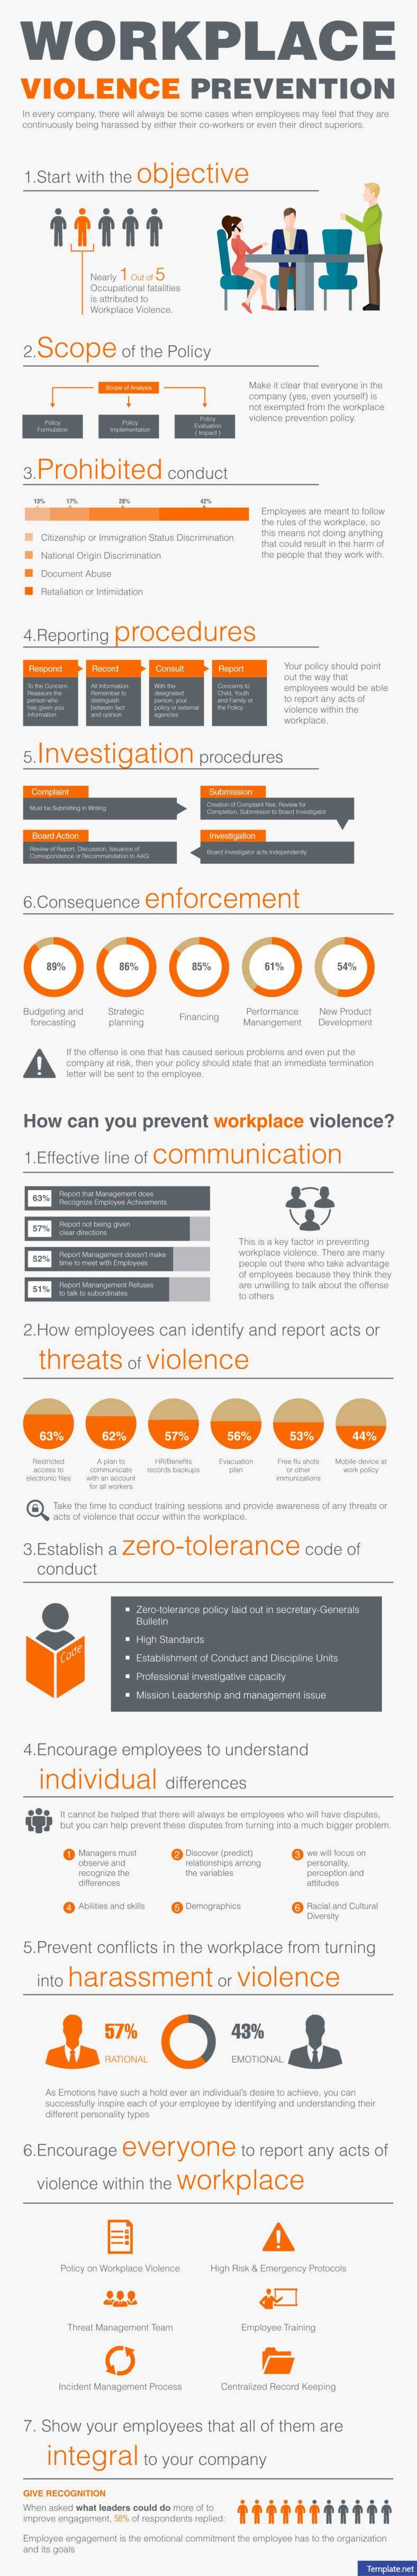 writing workplace violence prevention policy